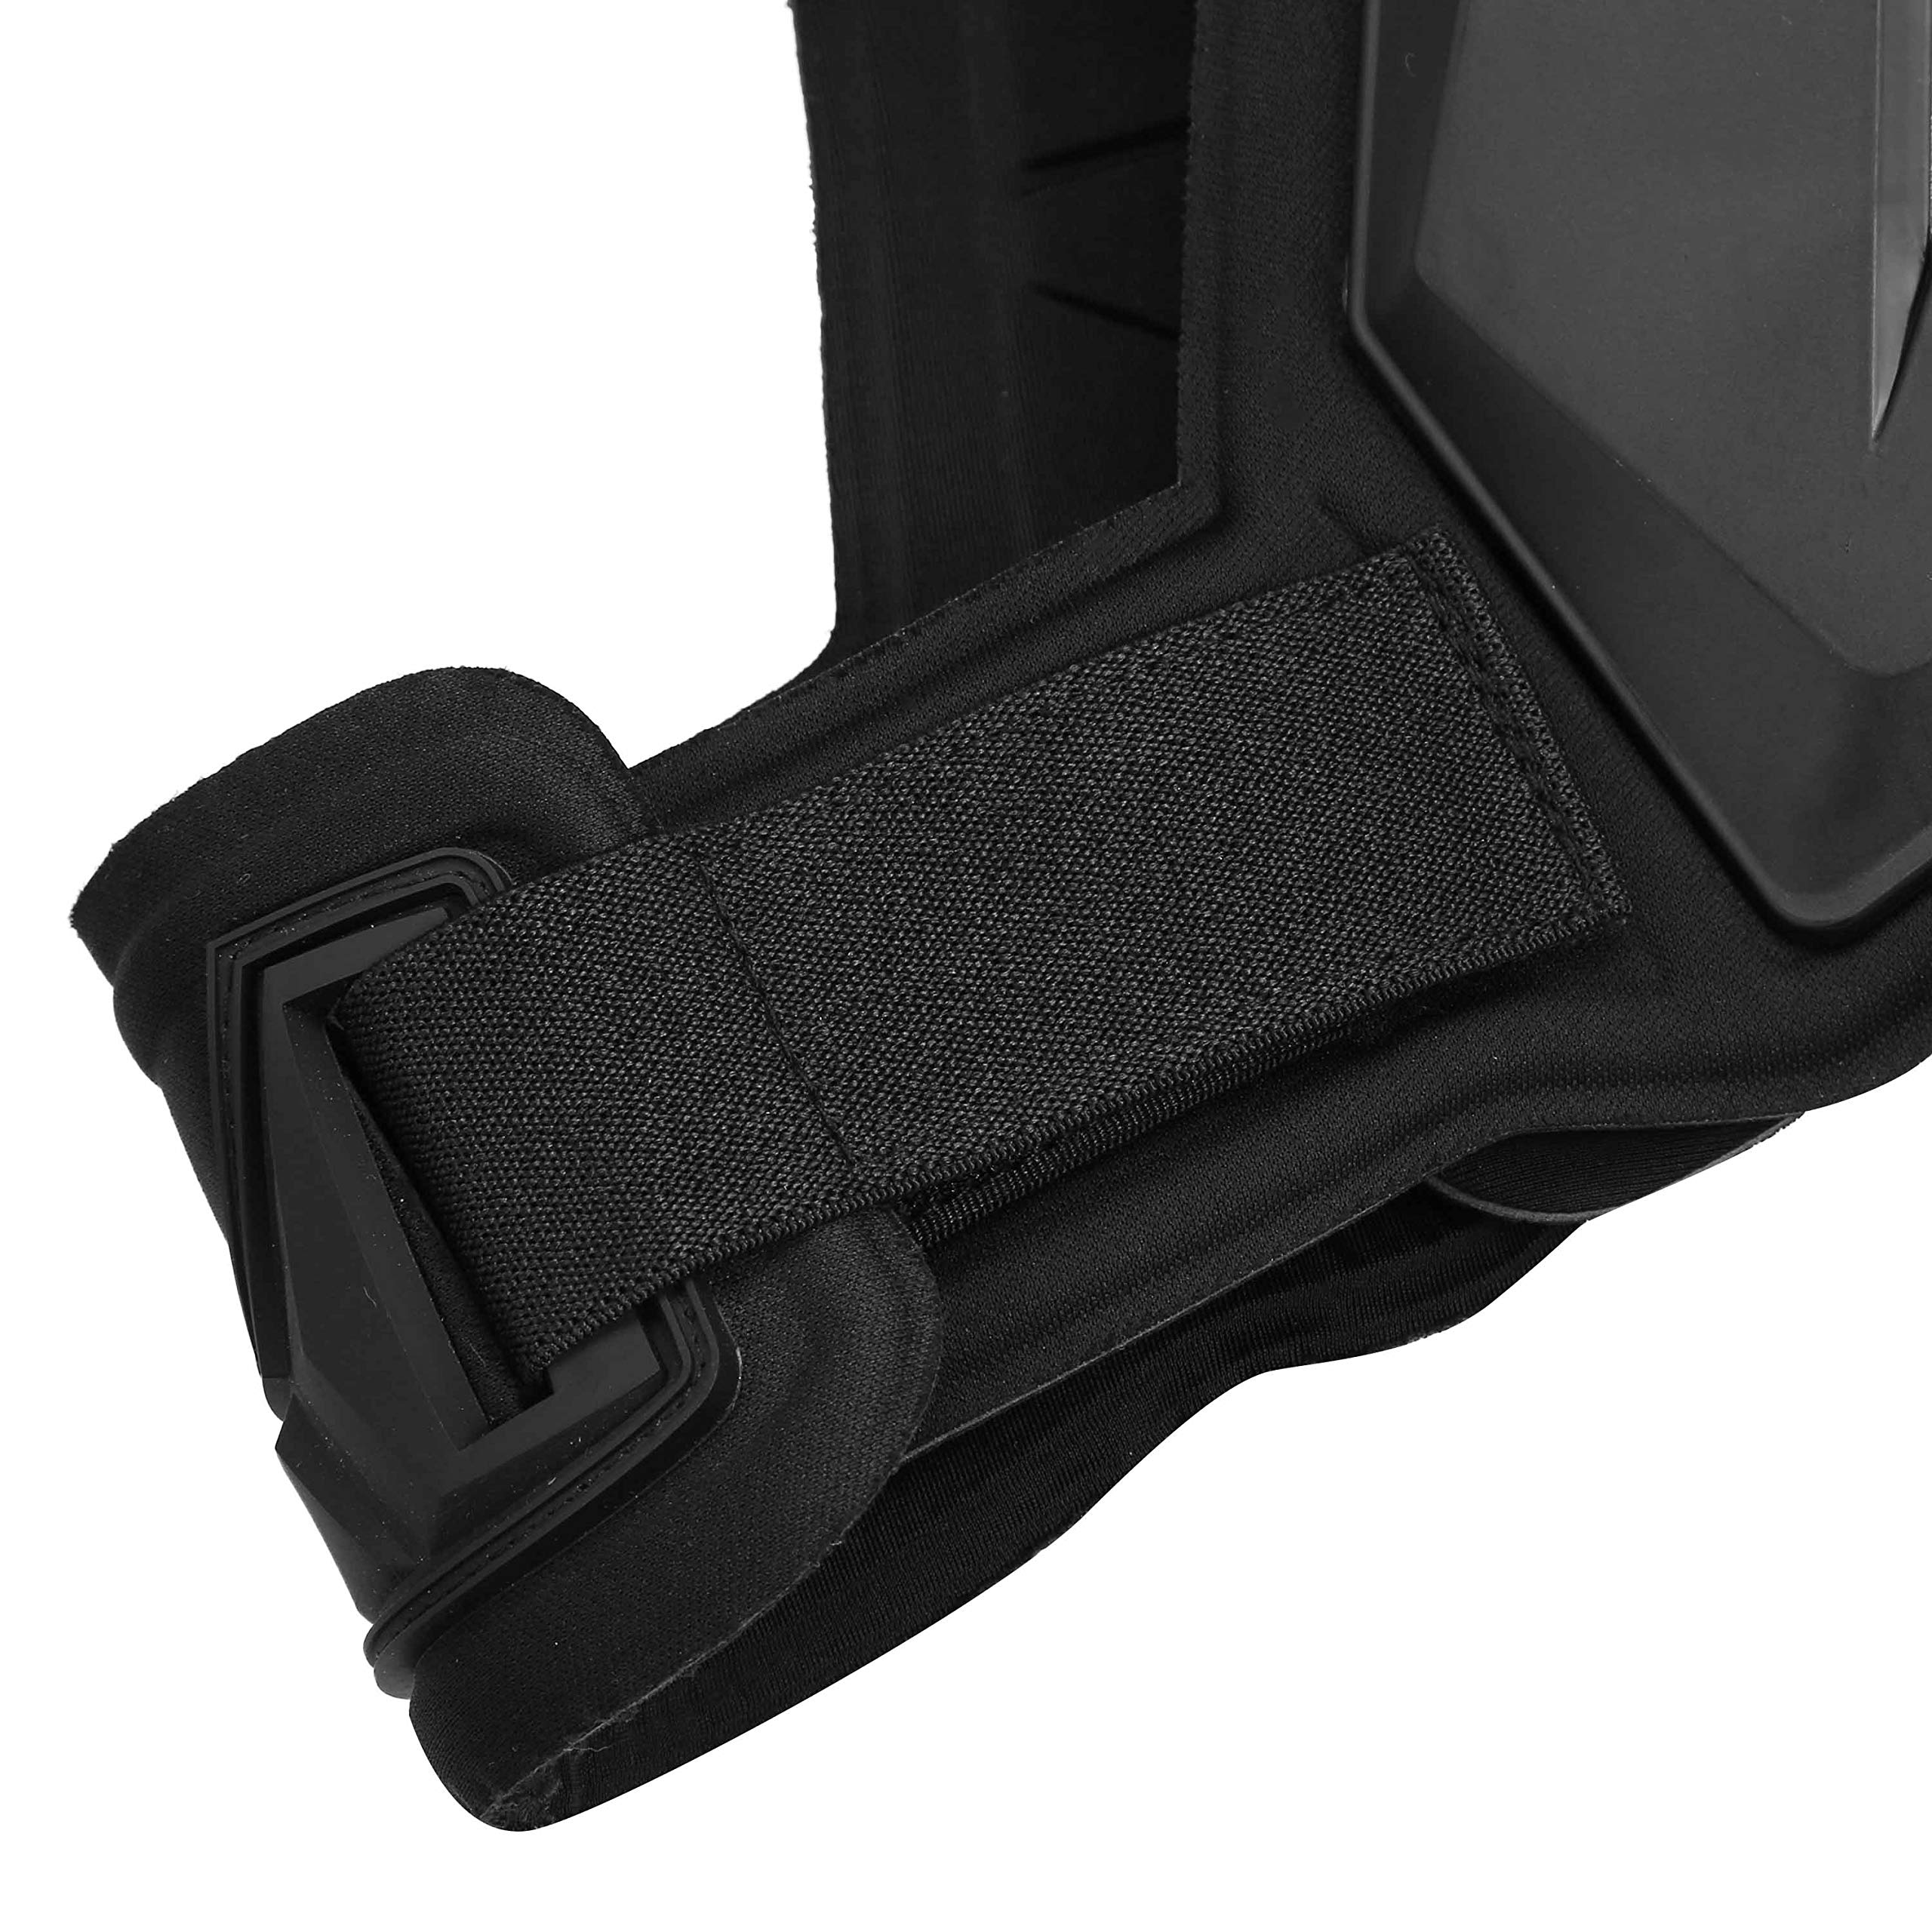 OHMOTOR Chest Back Protector Motorcycle Armor Vest Motorcycle Riding Chest Armor (Black) by OHMOTOR (Image #4)